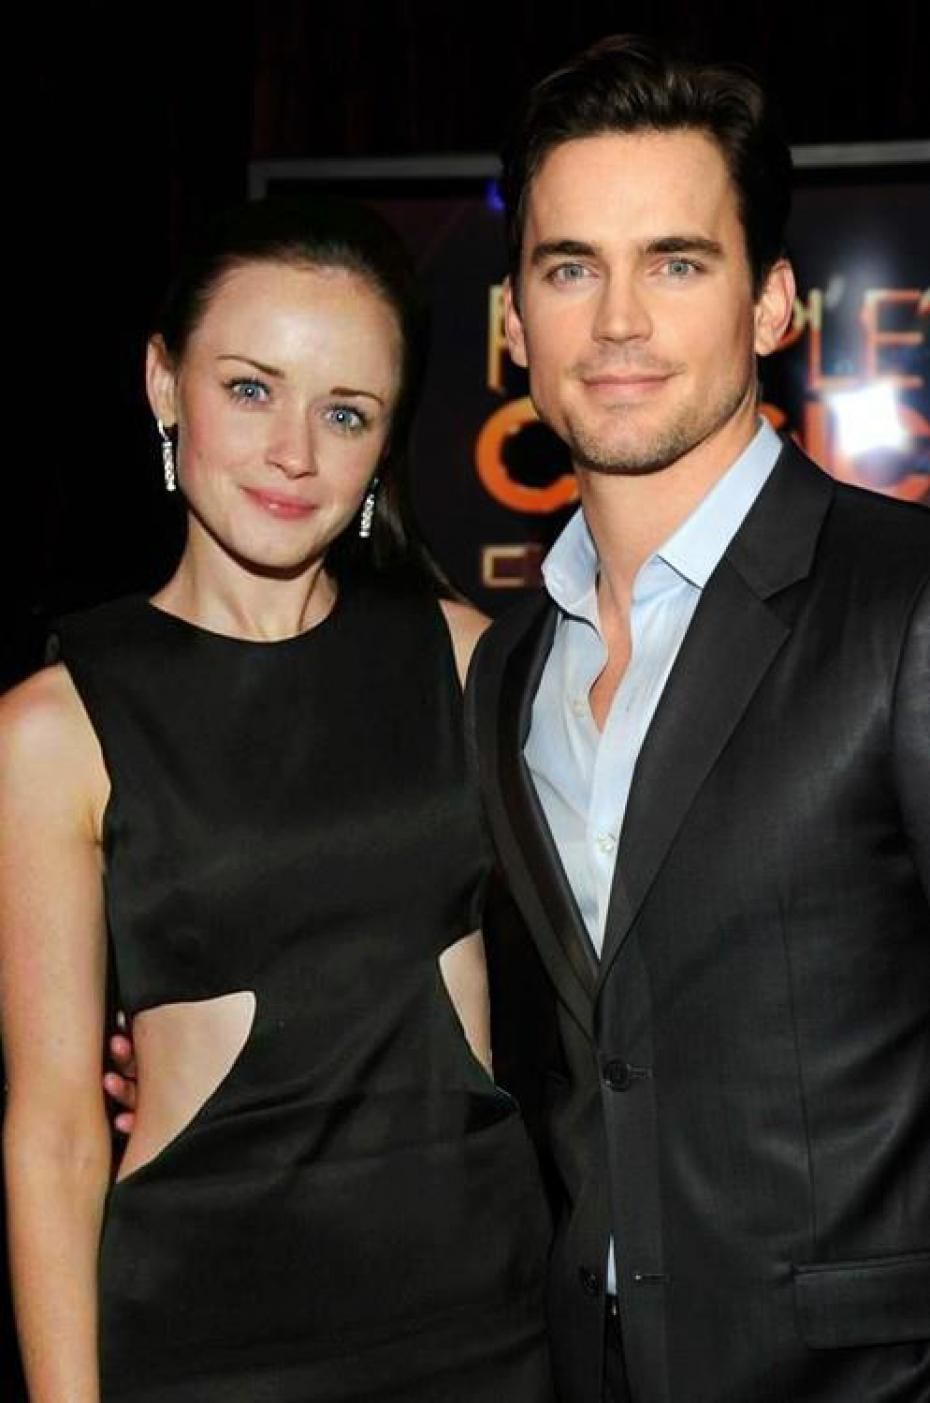 Matt Bomer And Alexis Bledel They Would Make Awesome Christian